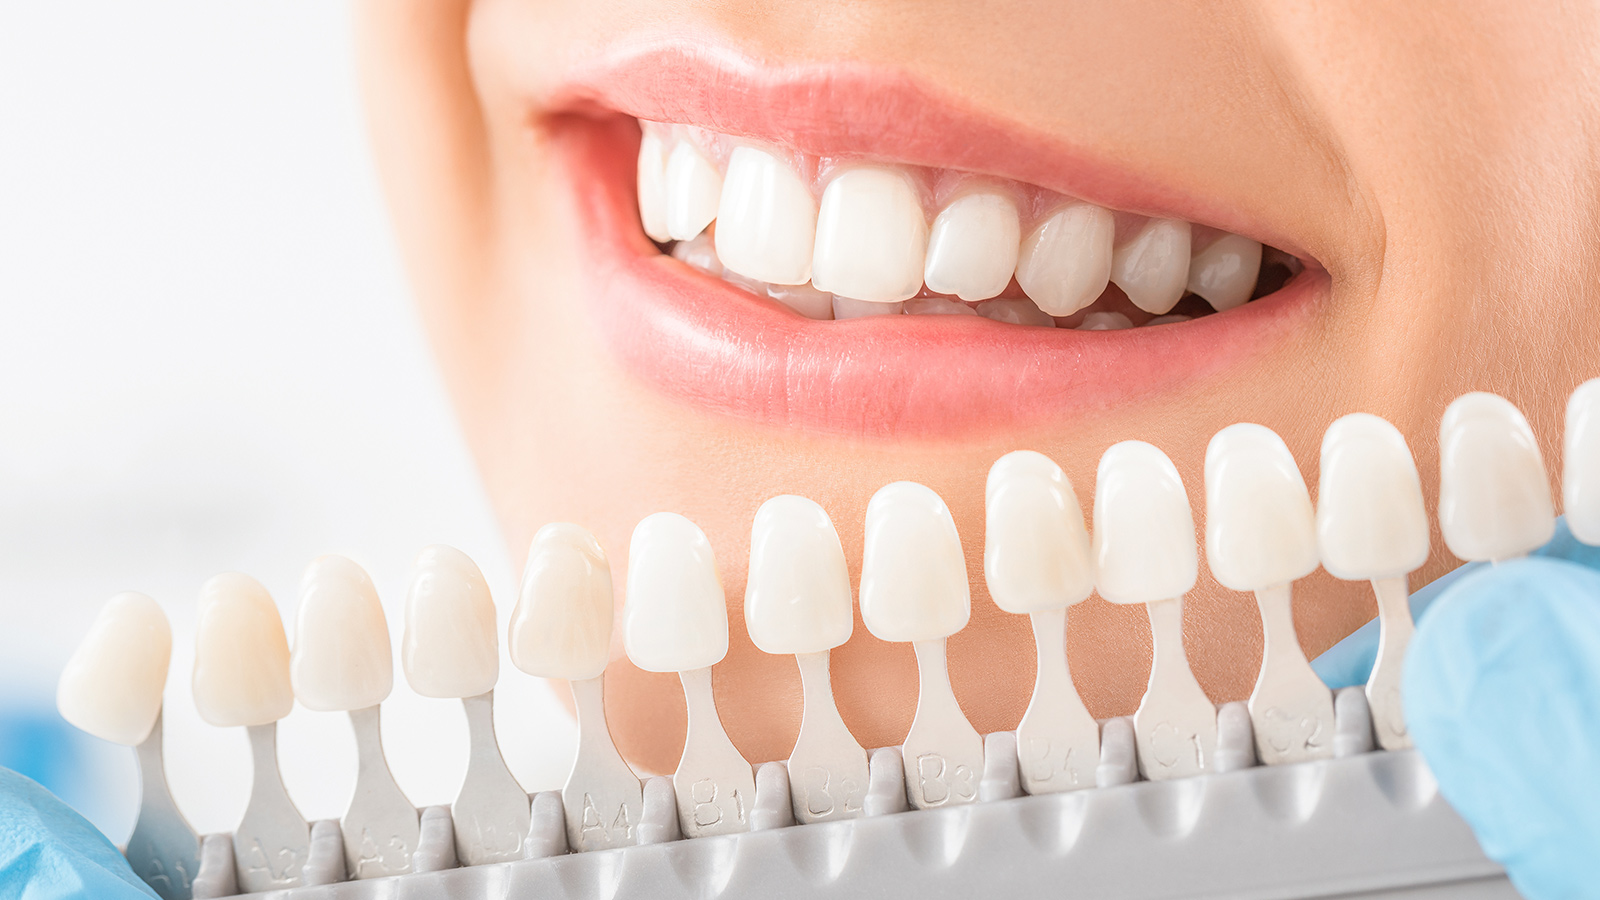 Spotlight Strips Teeth Whitening – What Every Person Should Consider